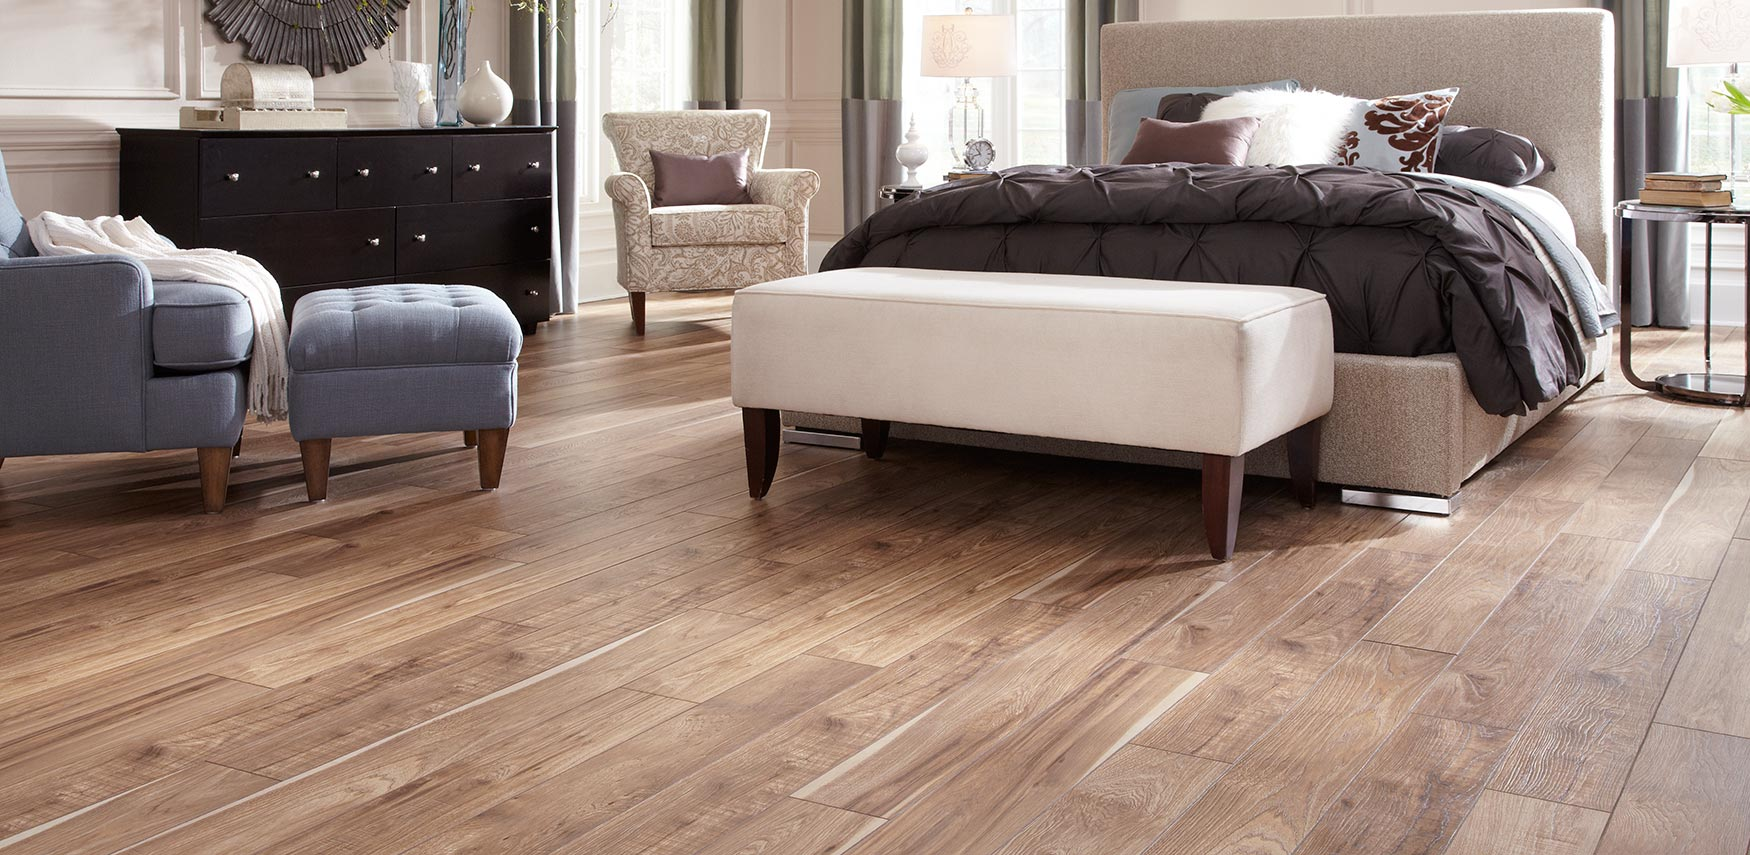 Wood and tile floor designs Bedroom Laminate Flooring Molony Tile Mannington Flooring Resilient Laminate Hardwood Luxury Vinyl